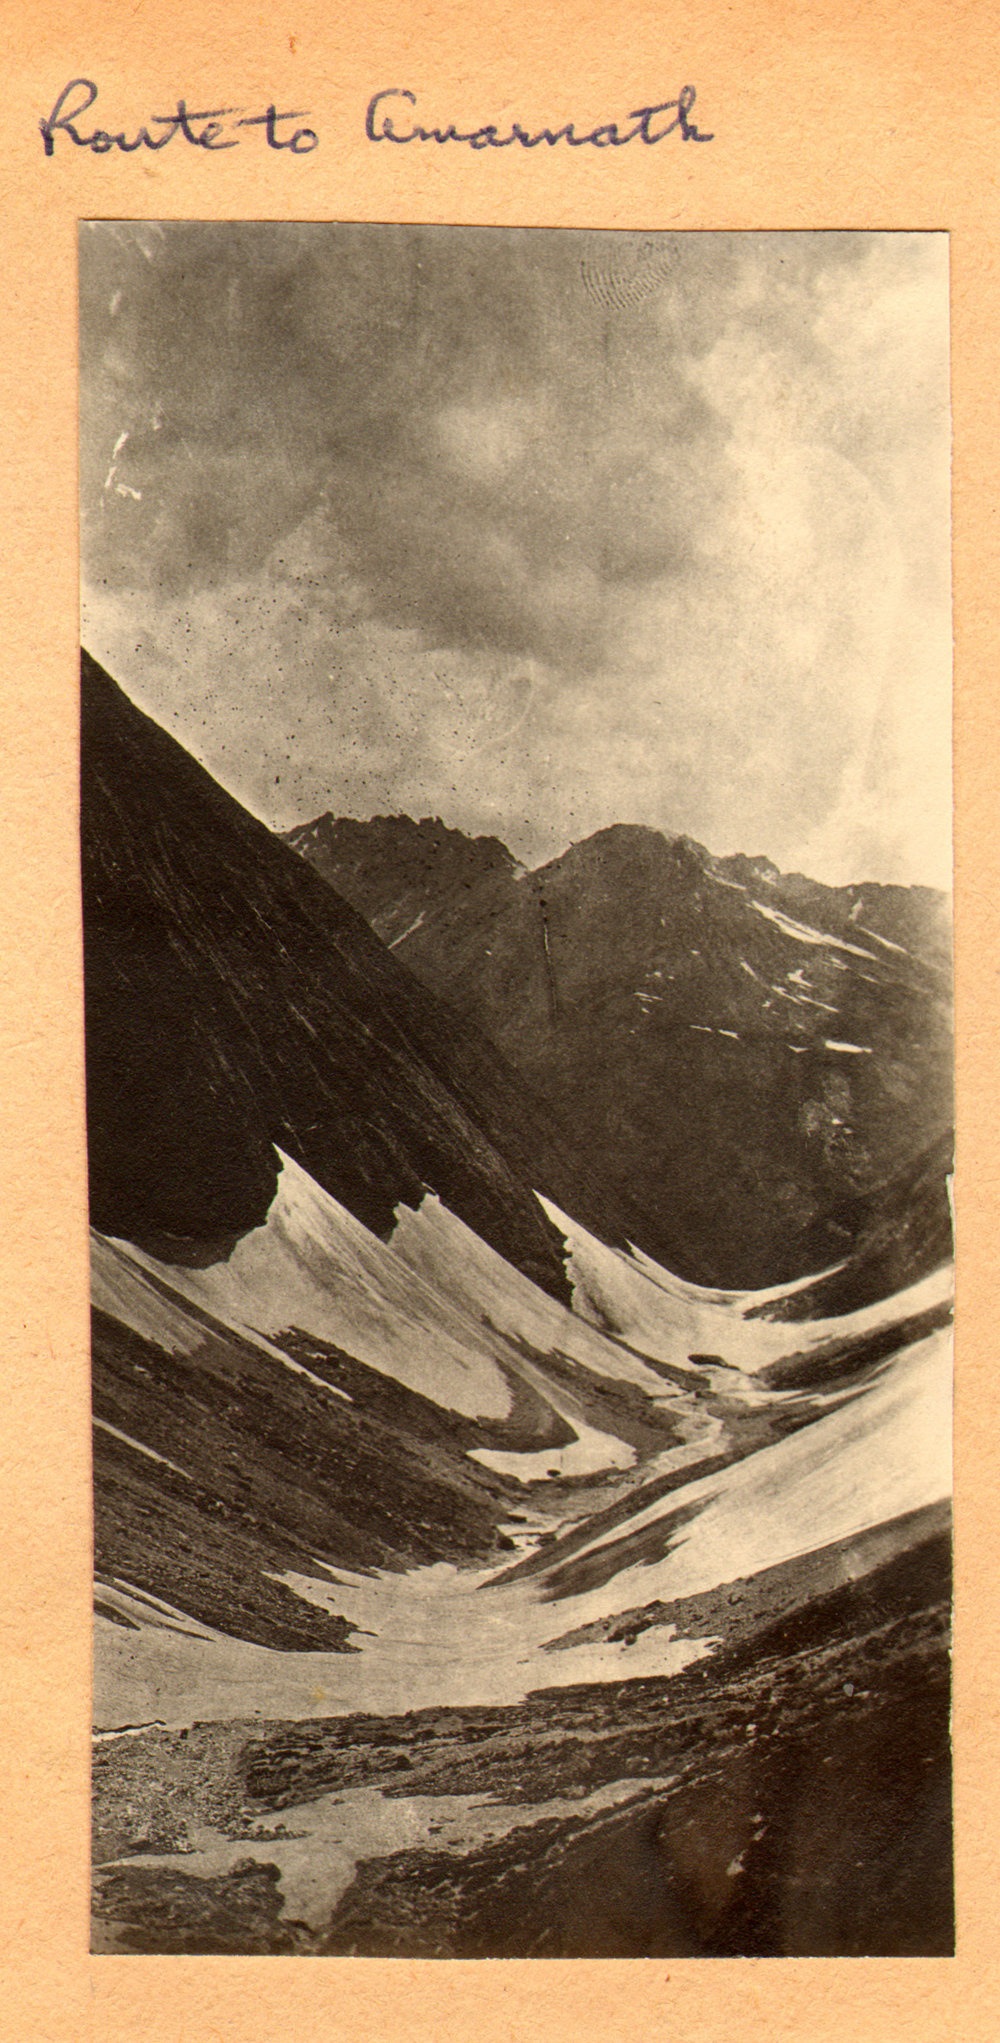 154 1920 Route to Amarnath by Ralph Stewart